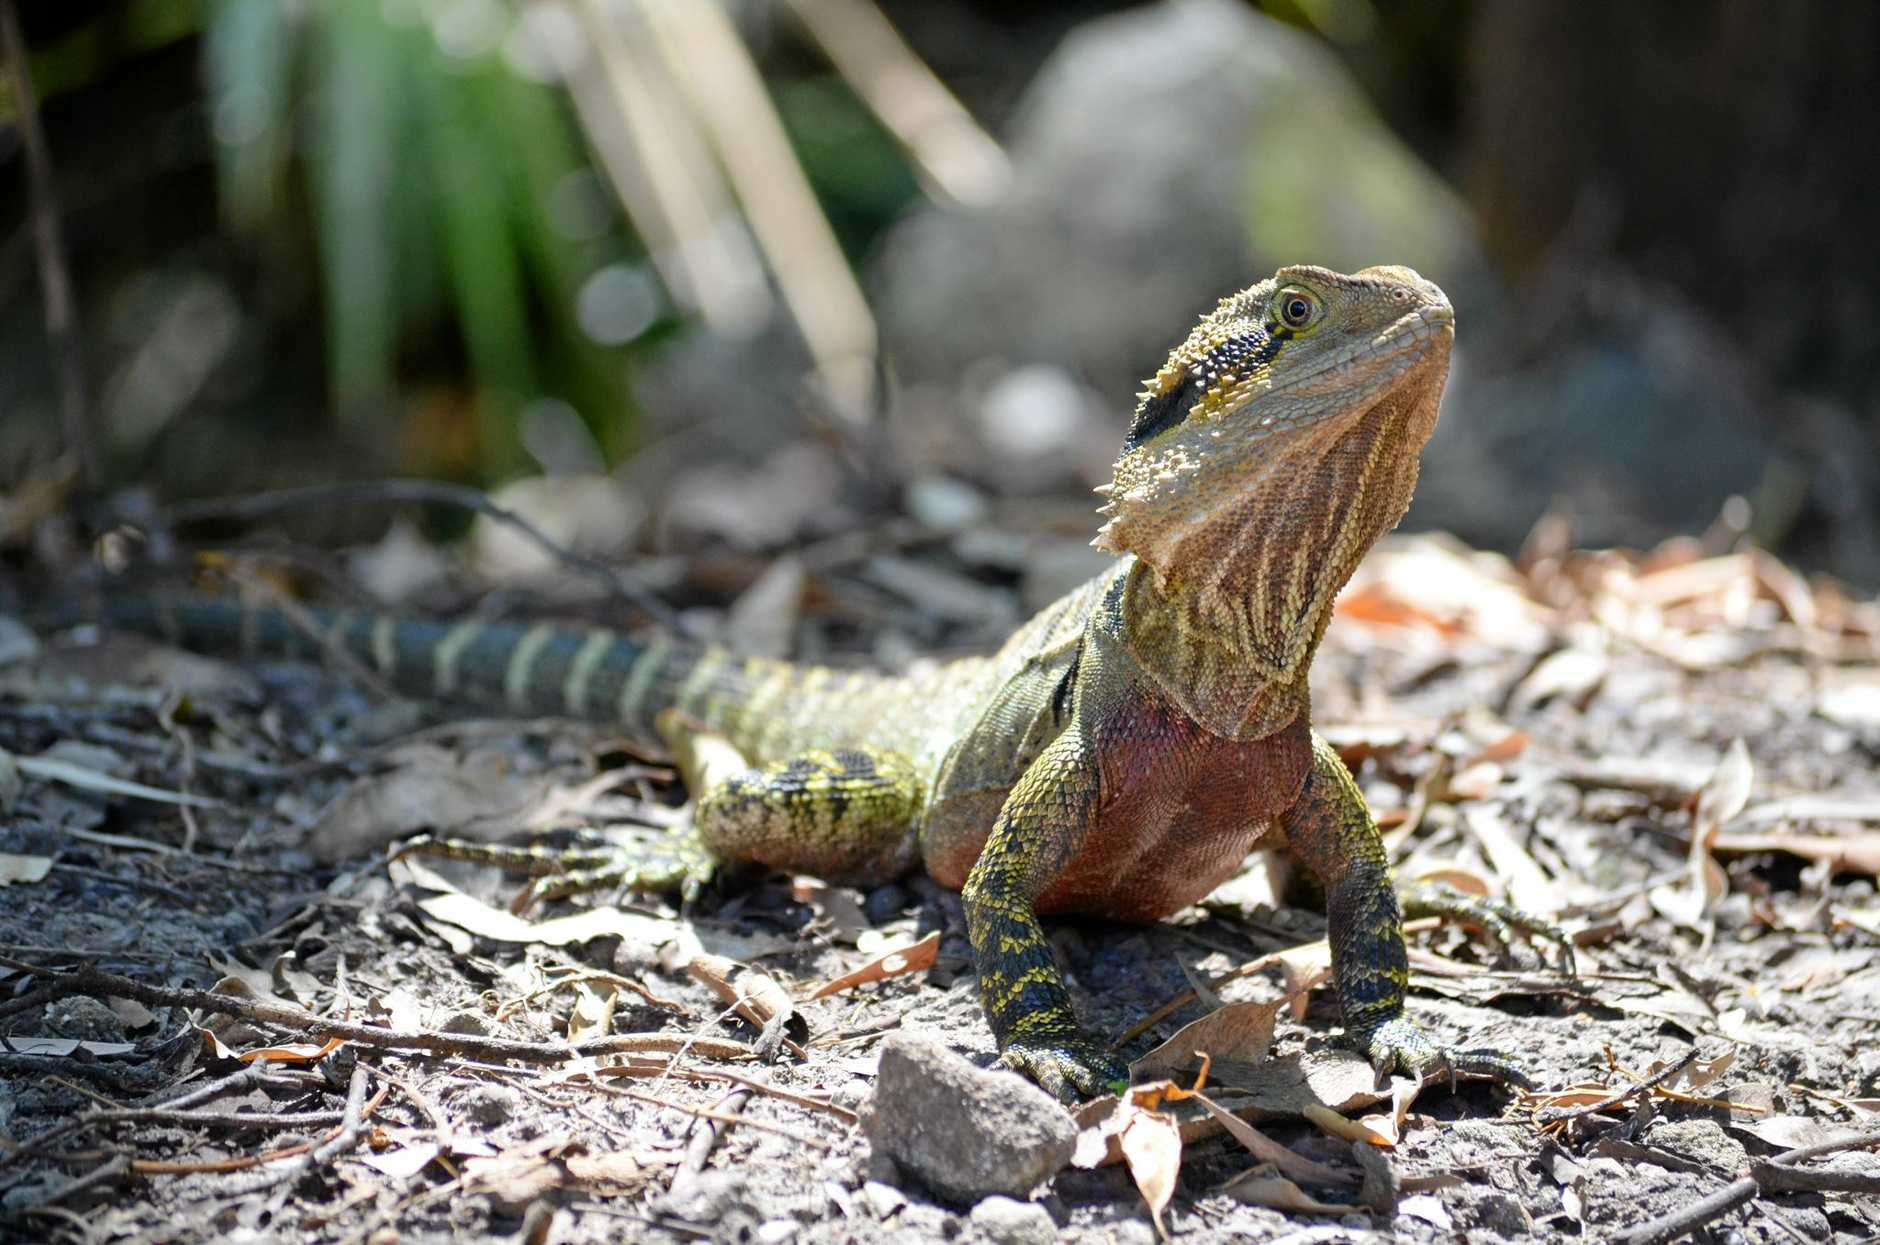 Just thought I would send you a couple of photos from the garden.  A female Eastern Water Dragon laying eggs THIS EVENING in our garden.  Wow! What an experience to witness.  Also a photo of the proud Male sunning himself in the garden a couple of weeks earlier.  Taken with a Nikon D5100.    Thanks,   Matt Shepherd  0407633323  Buderim